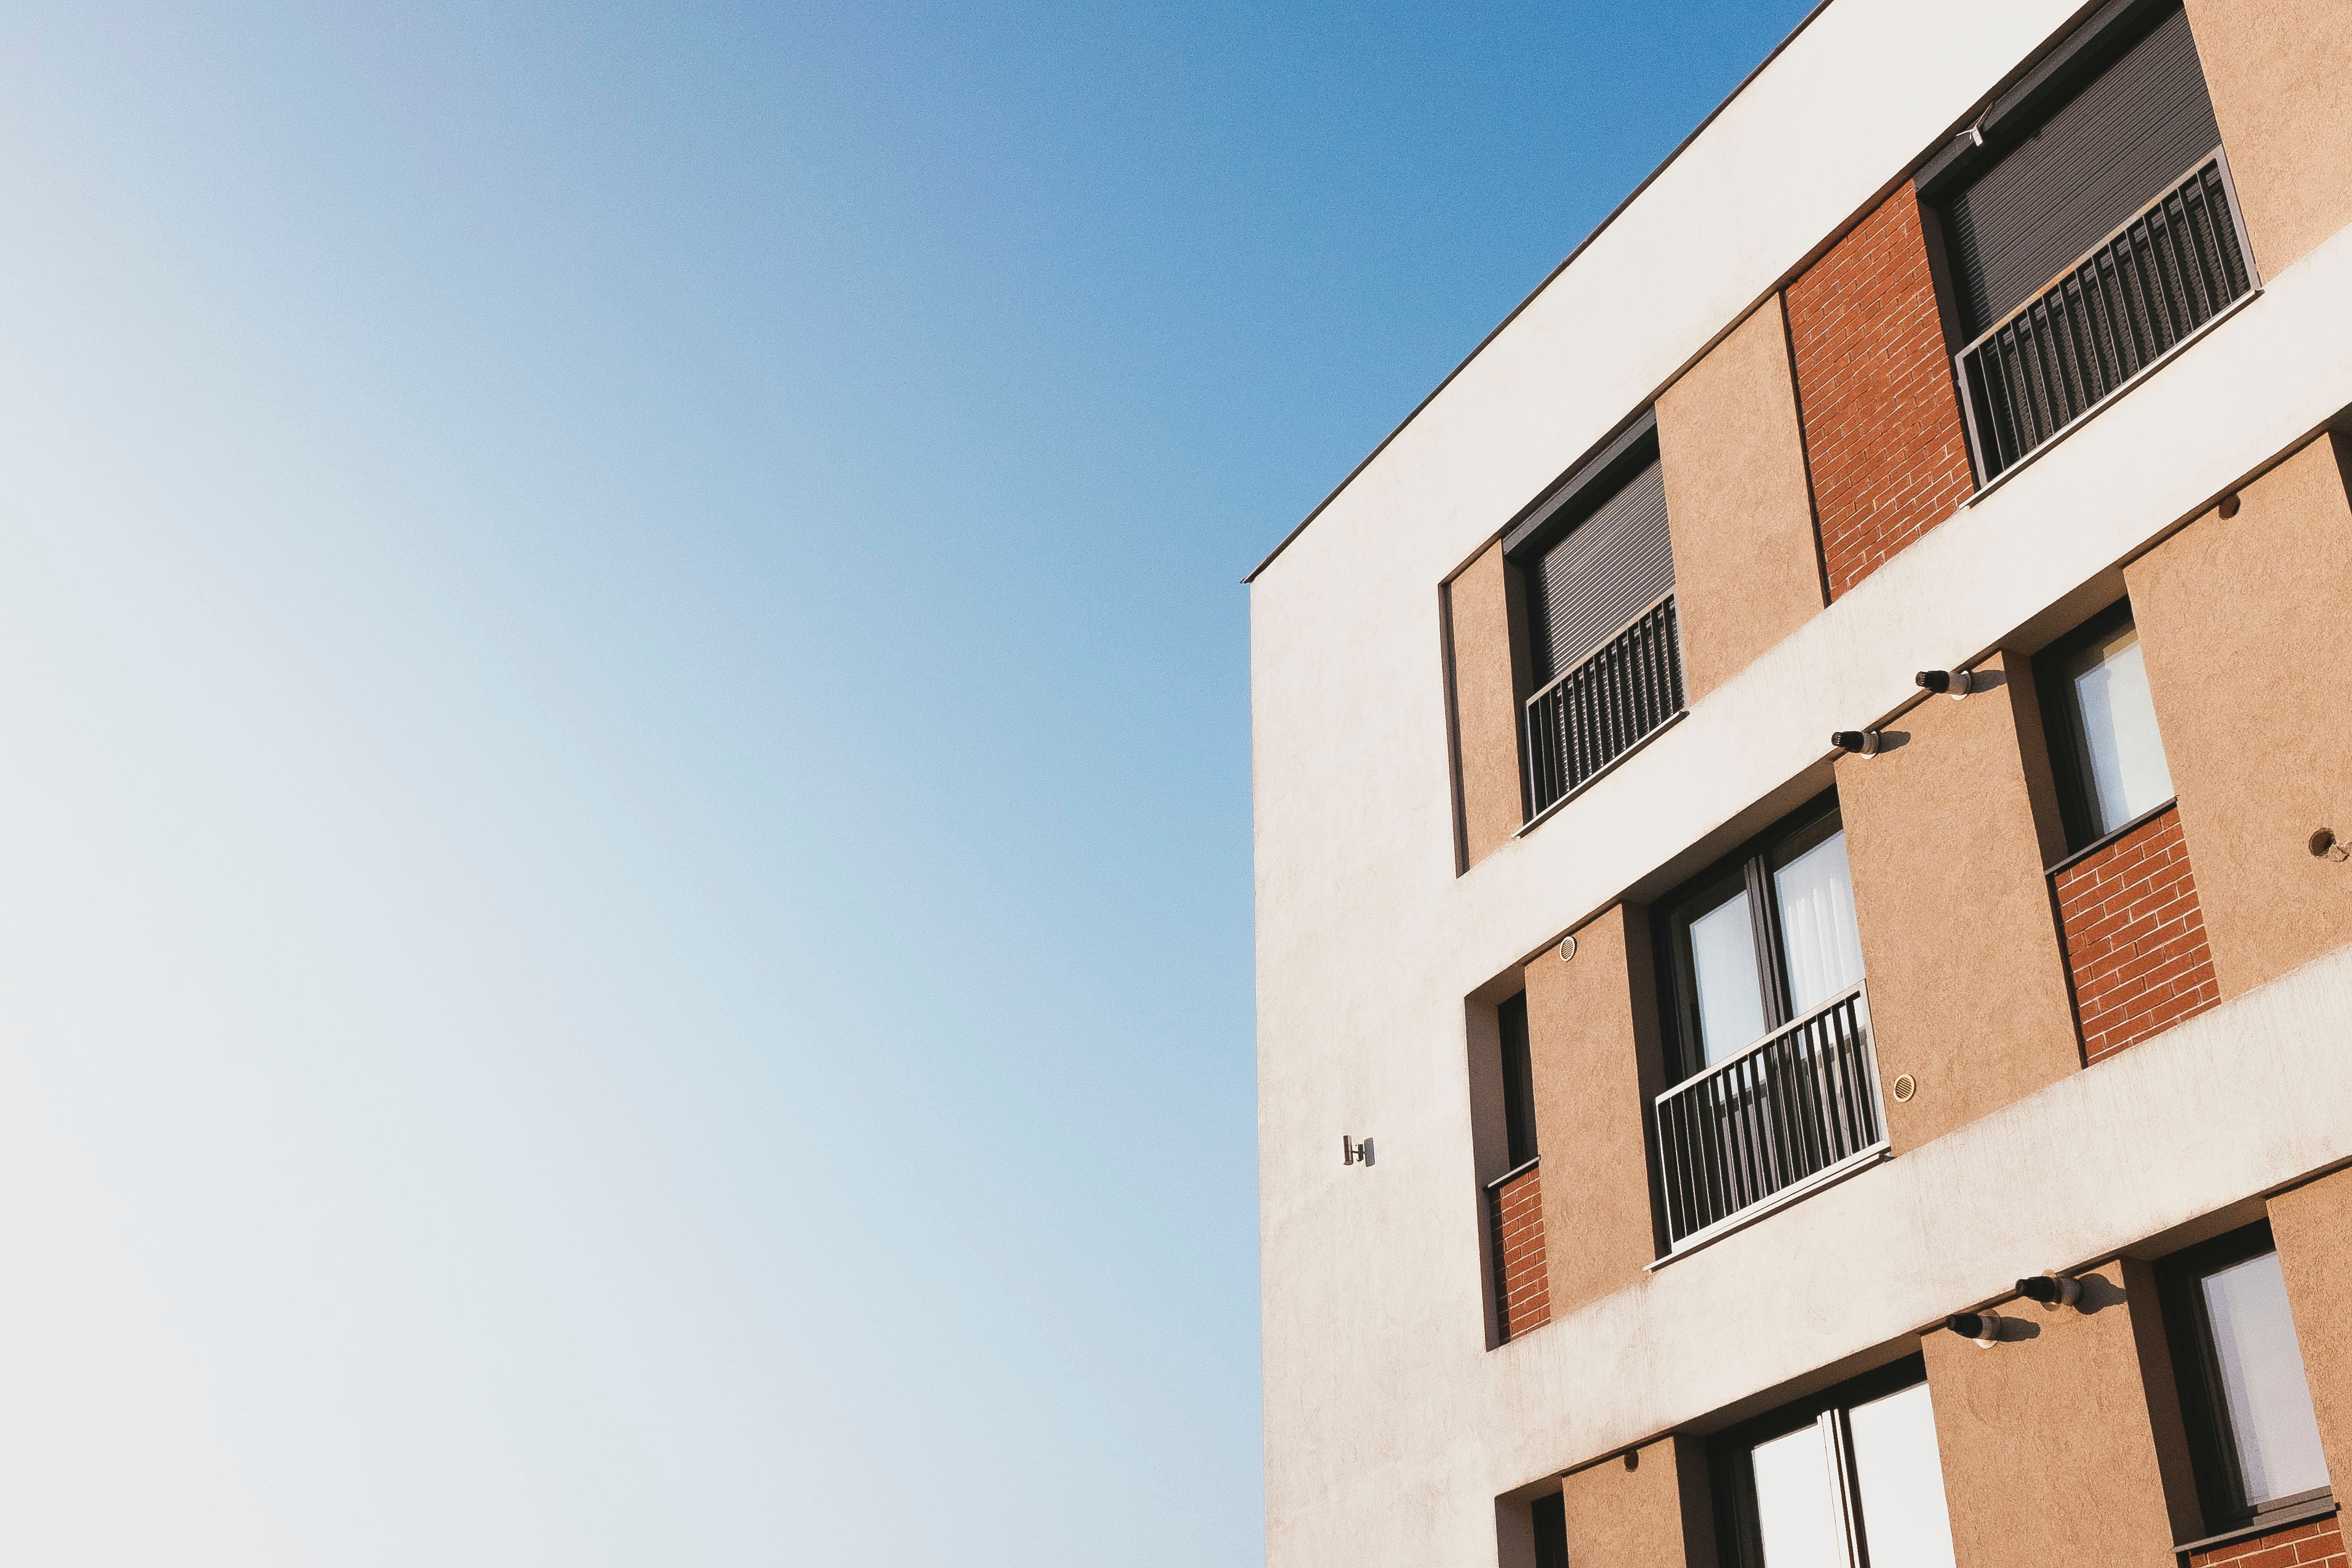 State governments assistance for landlords and tenants